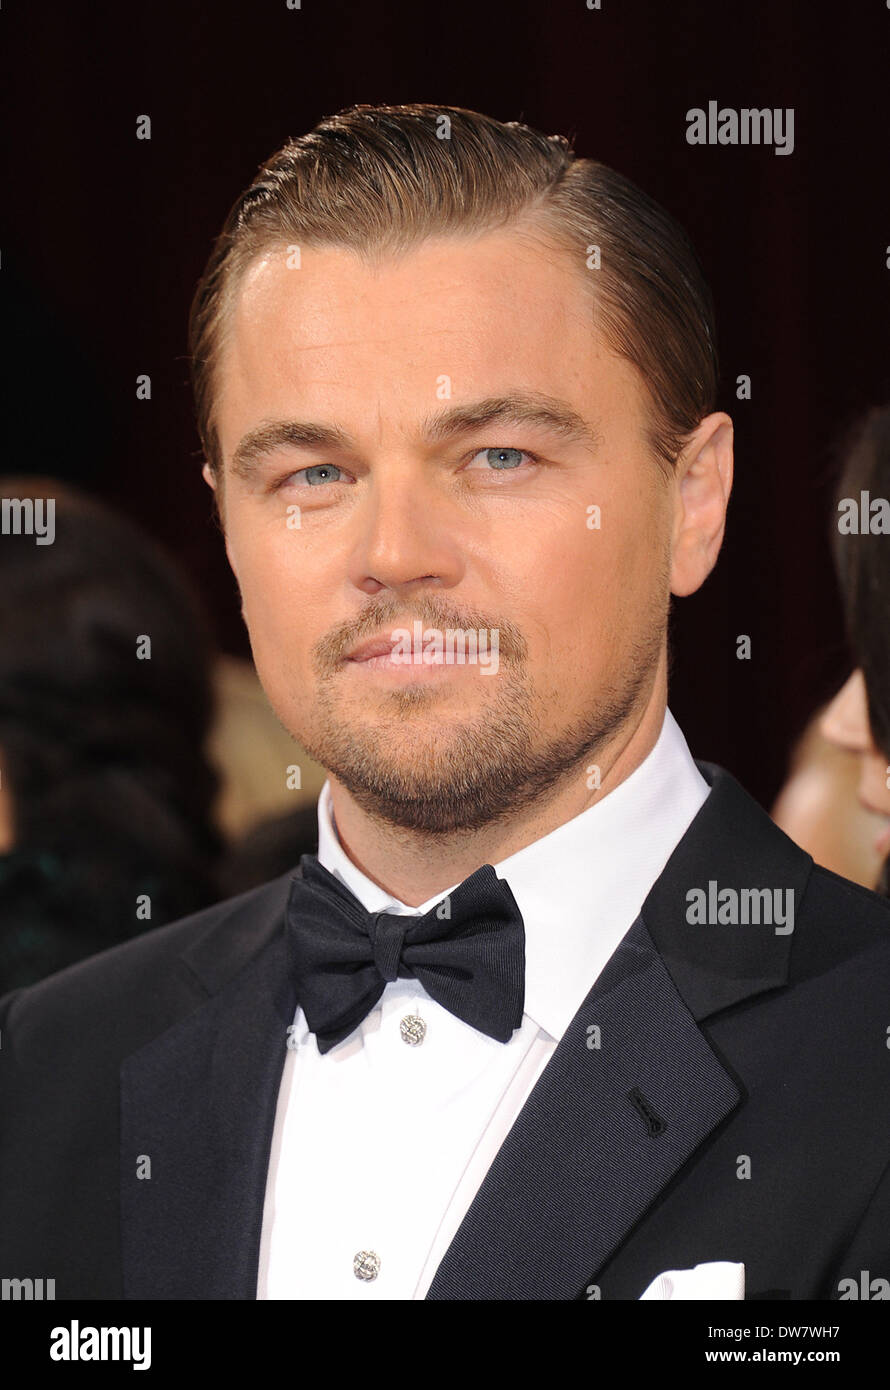 Hollywood, California, USA. 2nd Mar, 2014. LEONARDO DICAPRIO, a nominated for an Oscar for best actor in a leading role for his work in 'The Wolf of Wall Street' arrives wearing a Tom Ford tuxedo at the 86th Academy Awards at the Dolby Theater. Credit:  Lisa O'Connor/ZUMA Wire/ZUMAPRESS.com/Alamy Live News - Stock Image